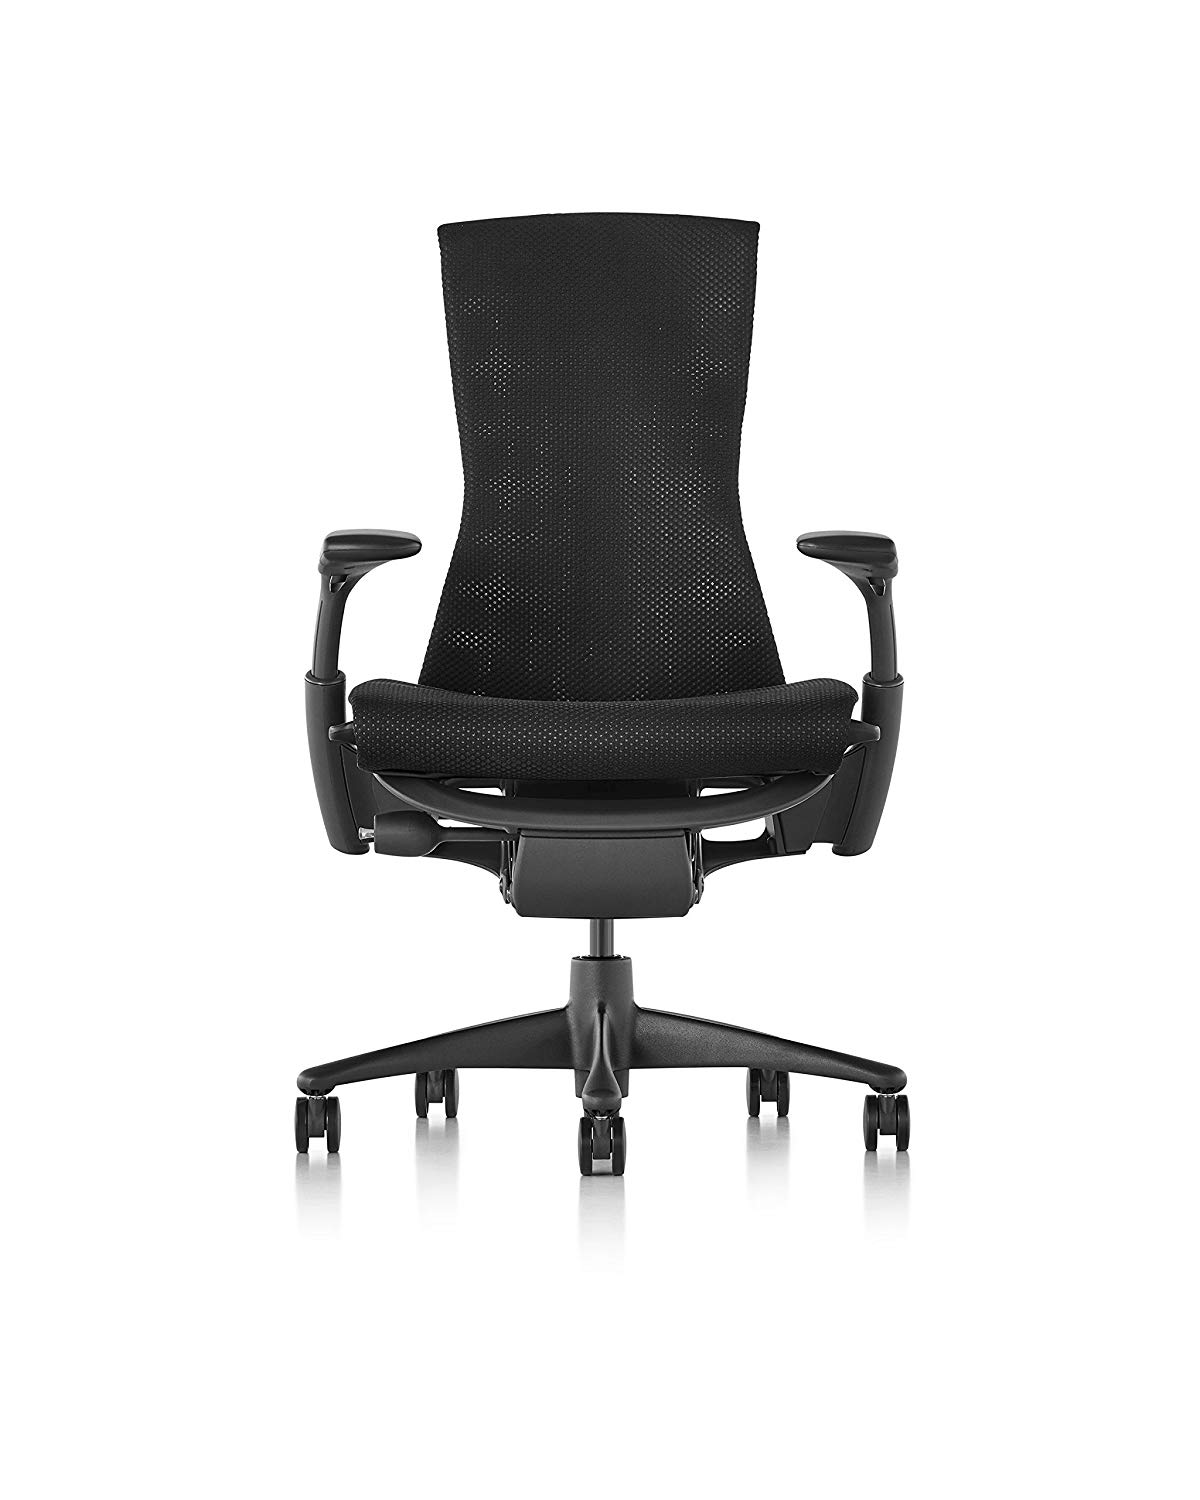 Herman Miller Embody Chair - Graphite Frame/Black Balance Textile